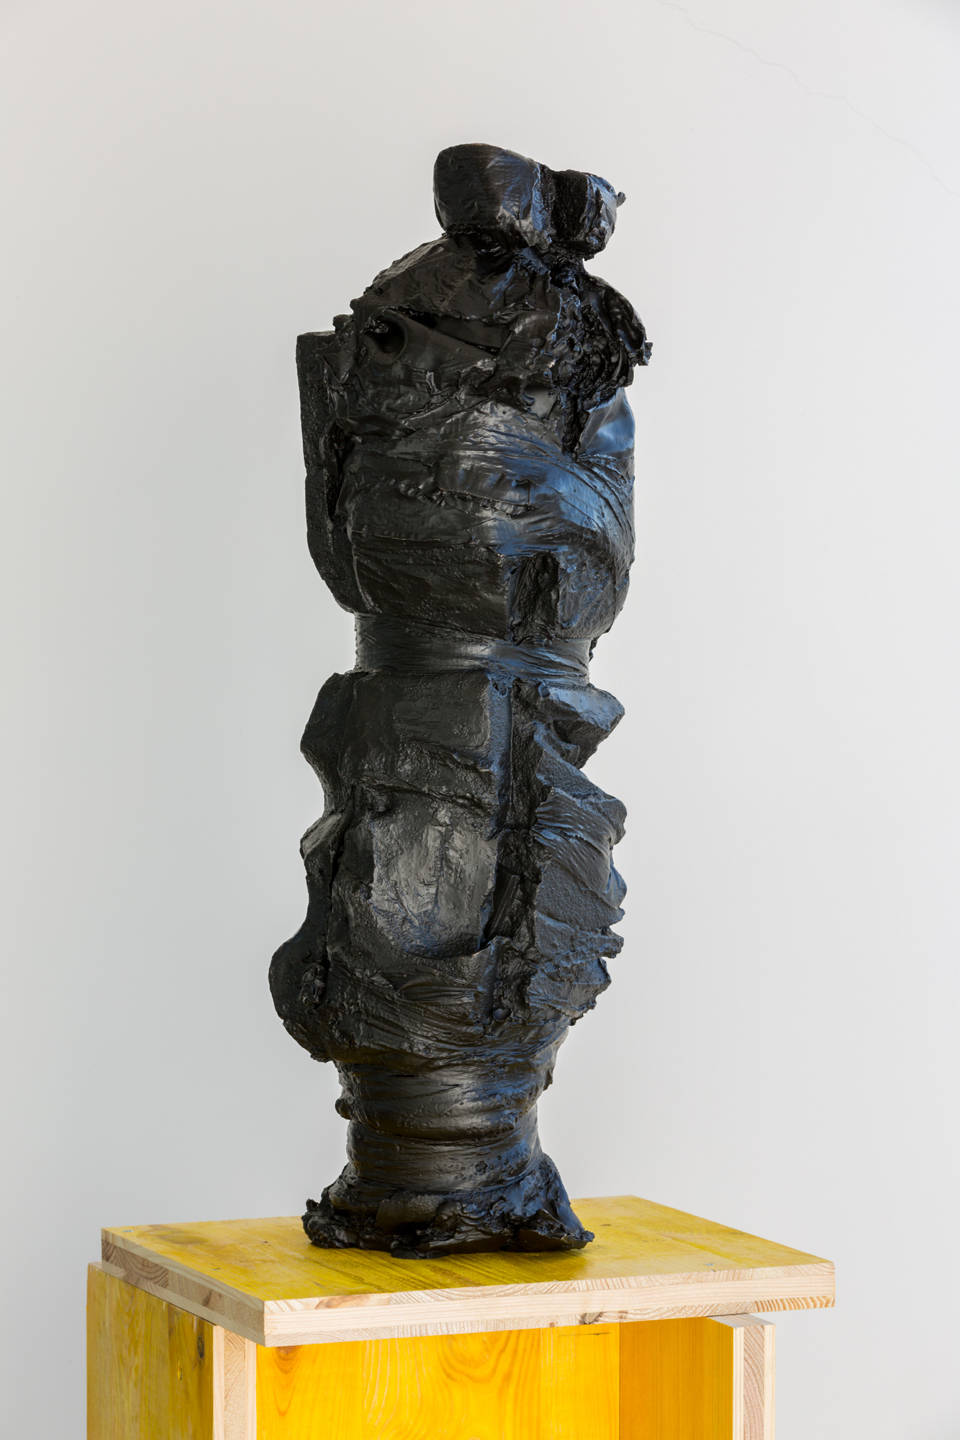 Pedro Cabrita Reis, Strapped, 2019. Bronze and formwork (doka) pedestal, sculpture 70 x 22 x 20 cm (27 1/2 x 8 5/8 x 7 7/8 in.) total 176 x 38 x 36 cm (69 1/4 x 15 x 14 1/8 in.)